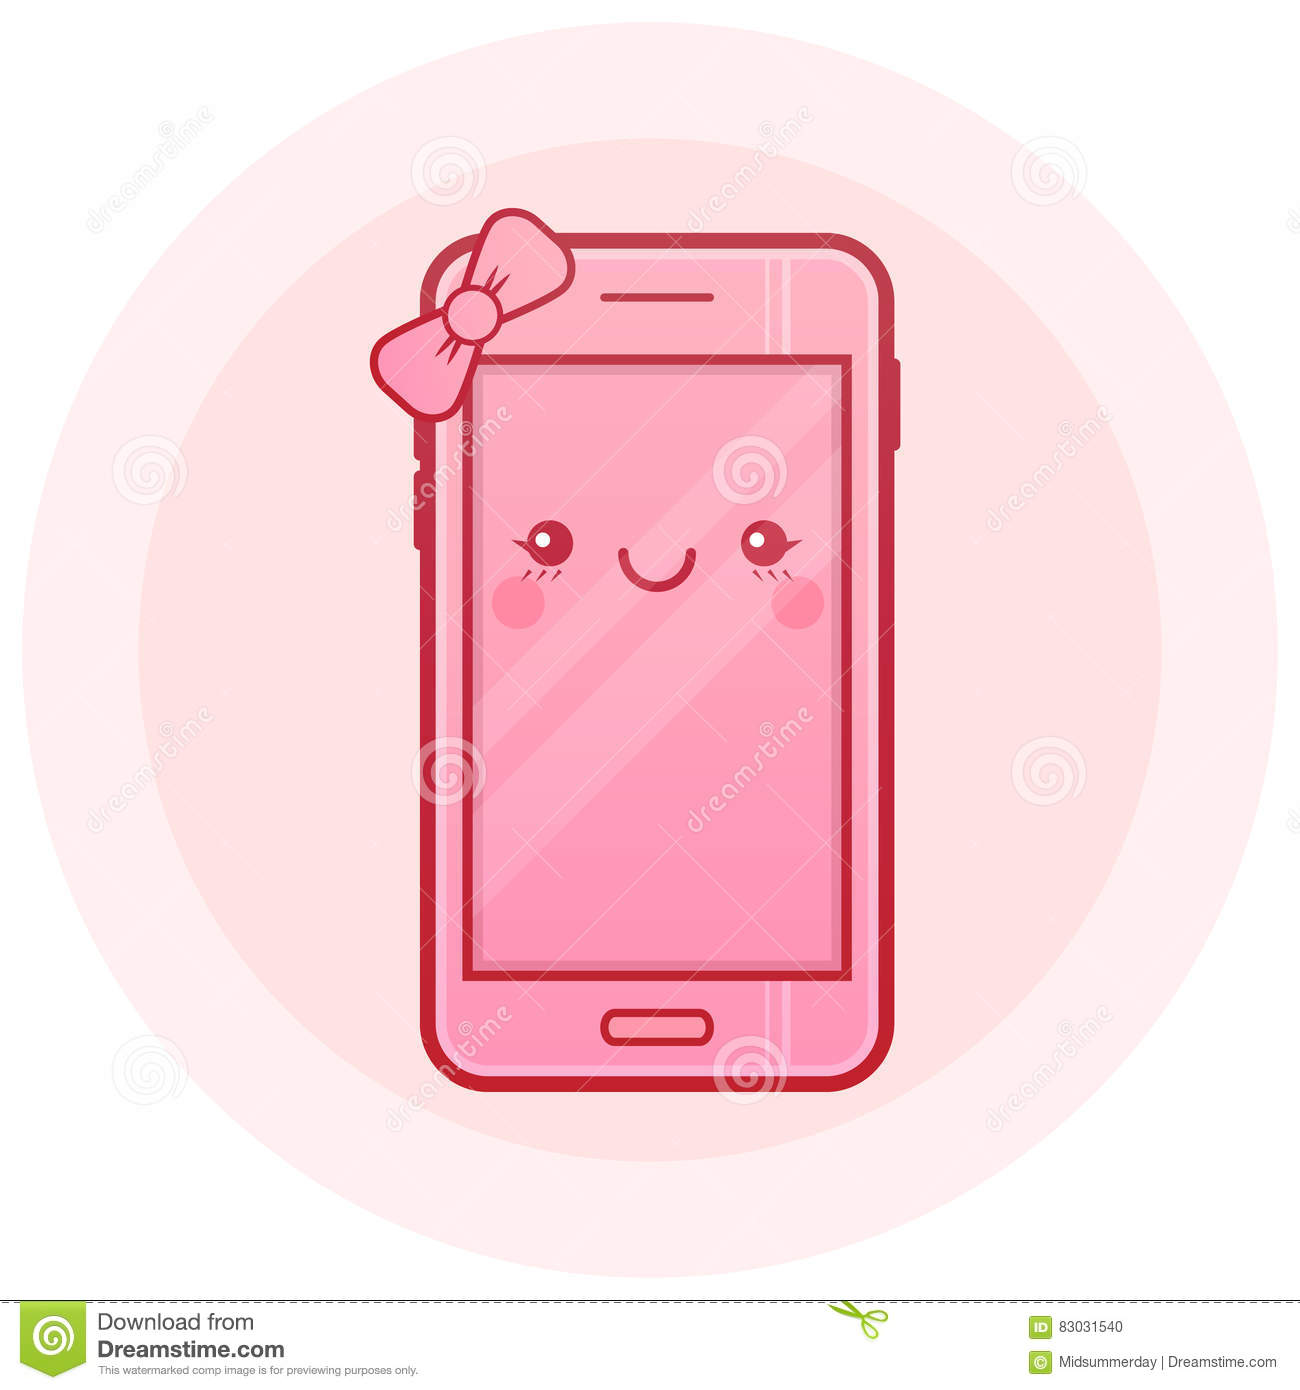 Cute Smartphone Vector Icon  Kawaii Cheerful Pink Mobile